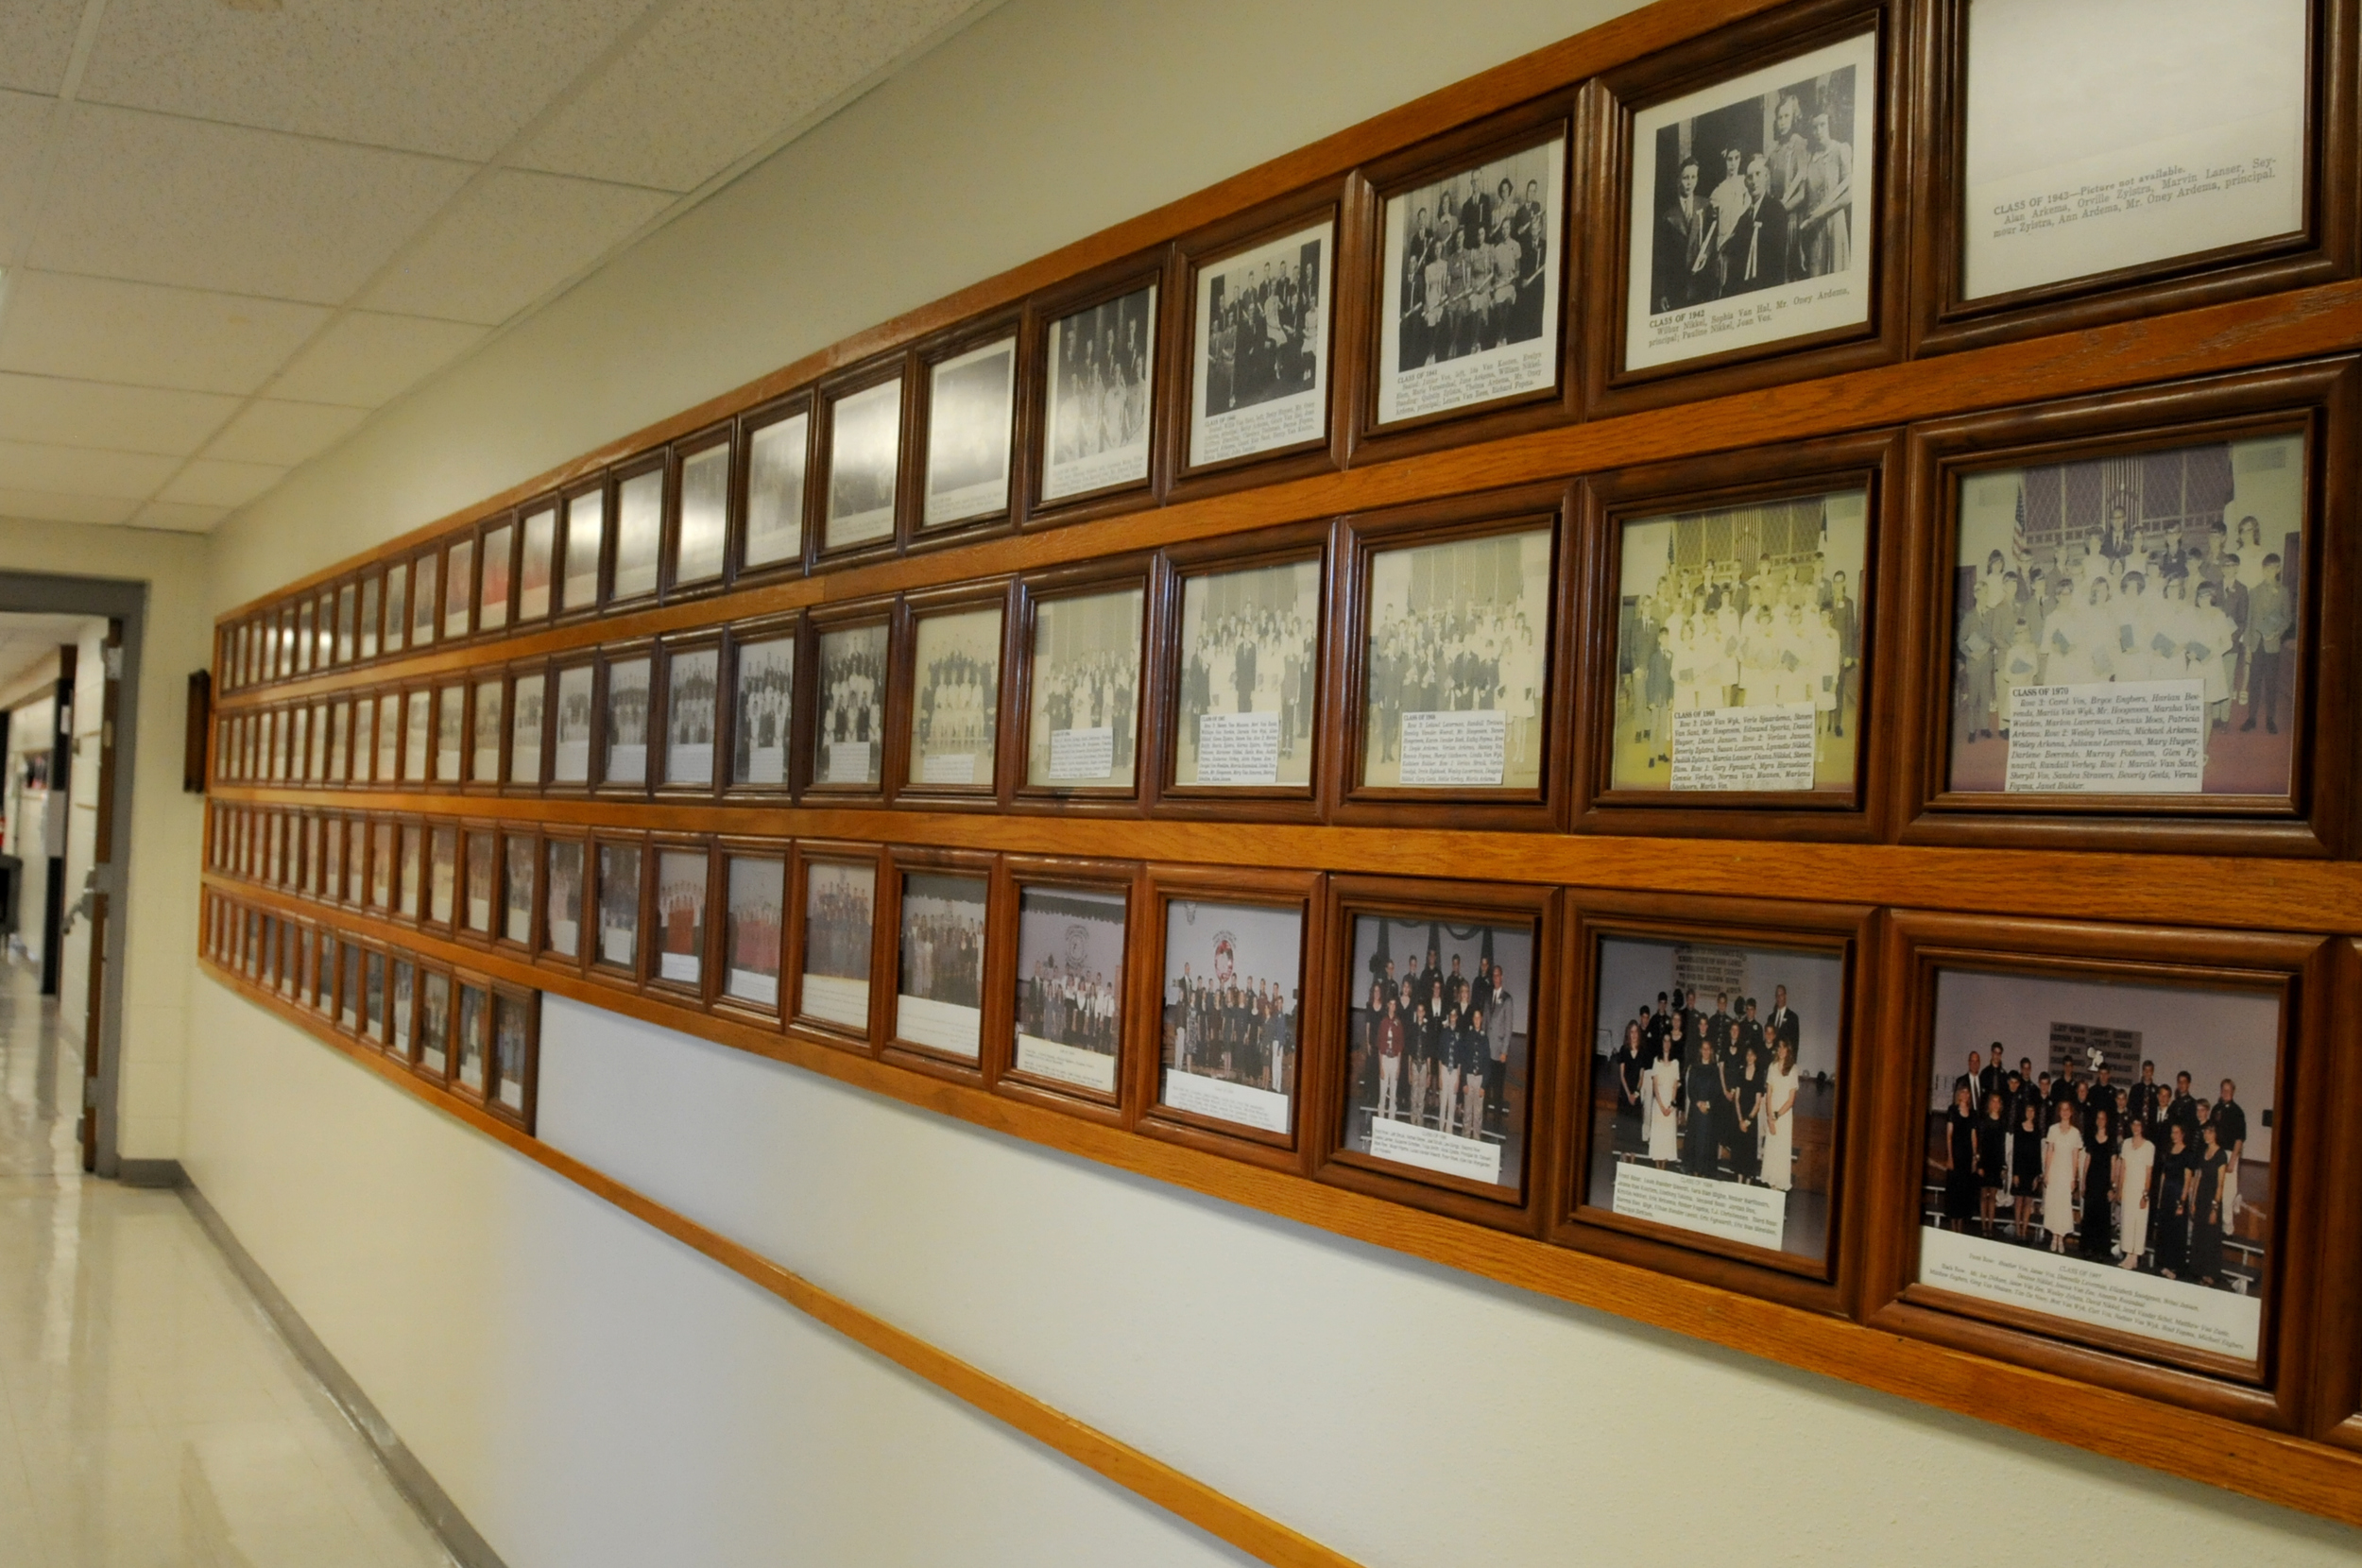 This hallway highlights the graduating class photos, starting with the class of 1919.